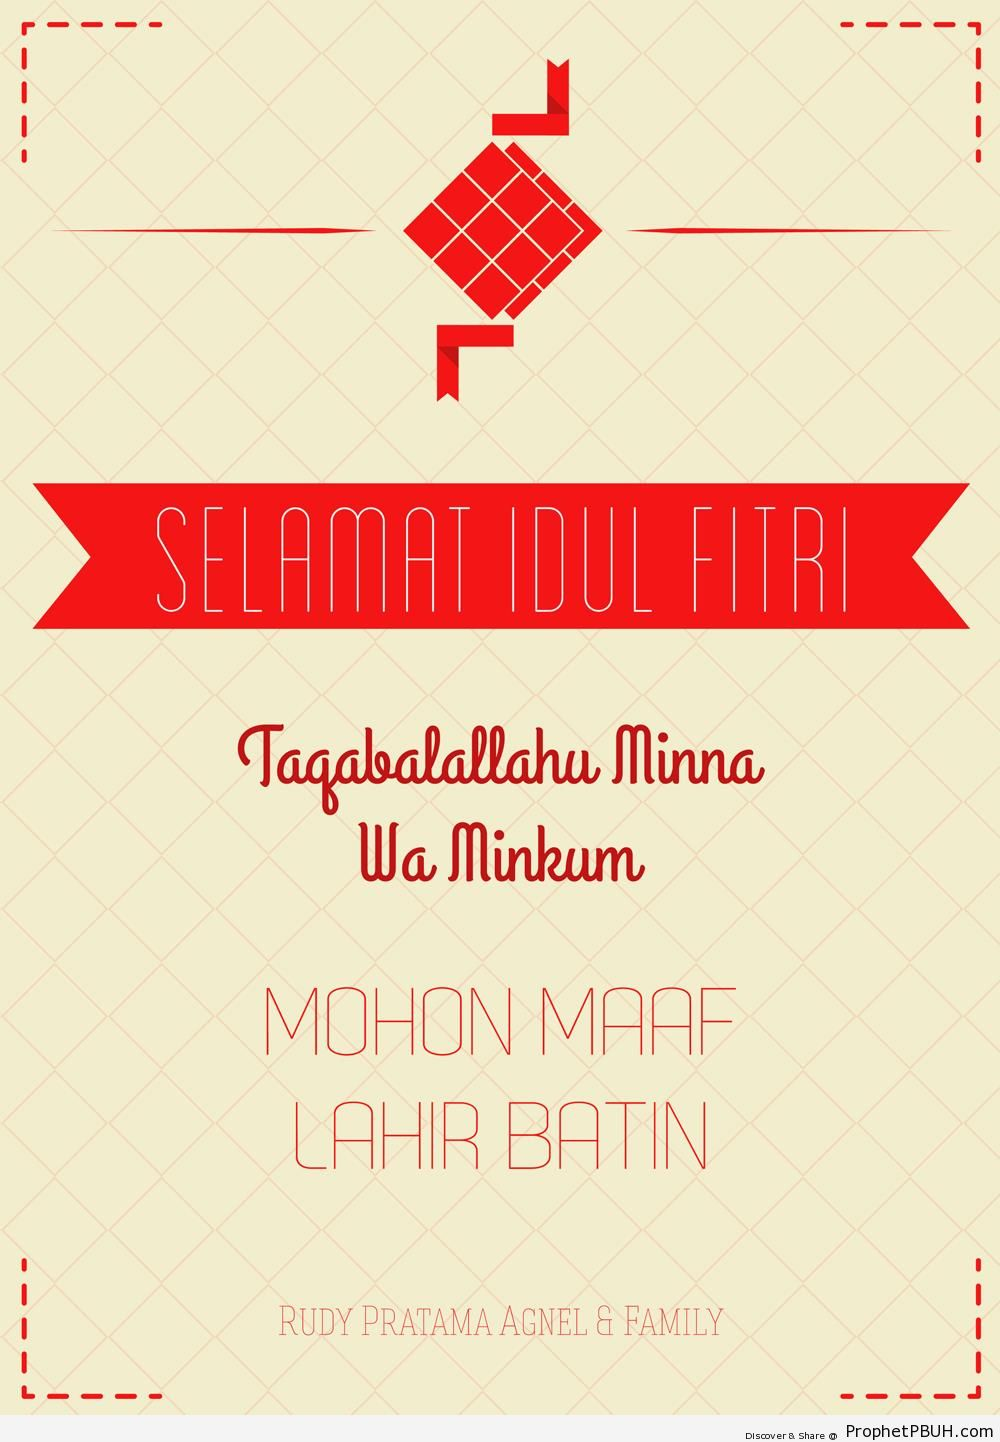 Selamat Idul Fitri (2013) [Happy Eid al-Fitr Greeting in Malay] - Eid al-Fitr Greetings and Wishes (Cards, Posters, and Wallpapers) -